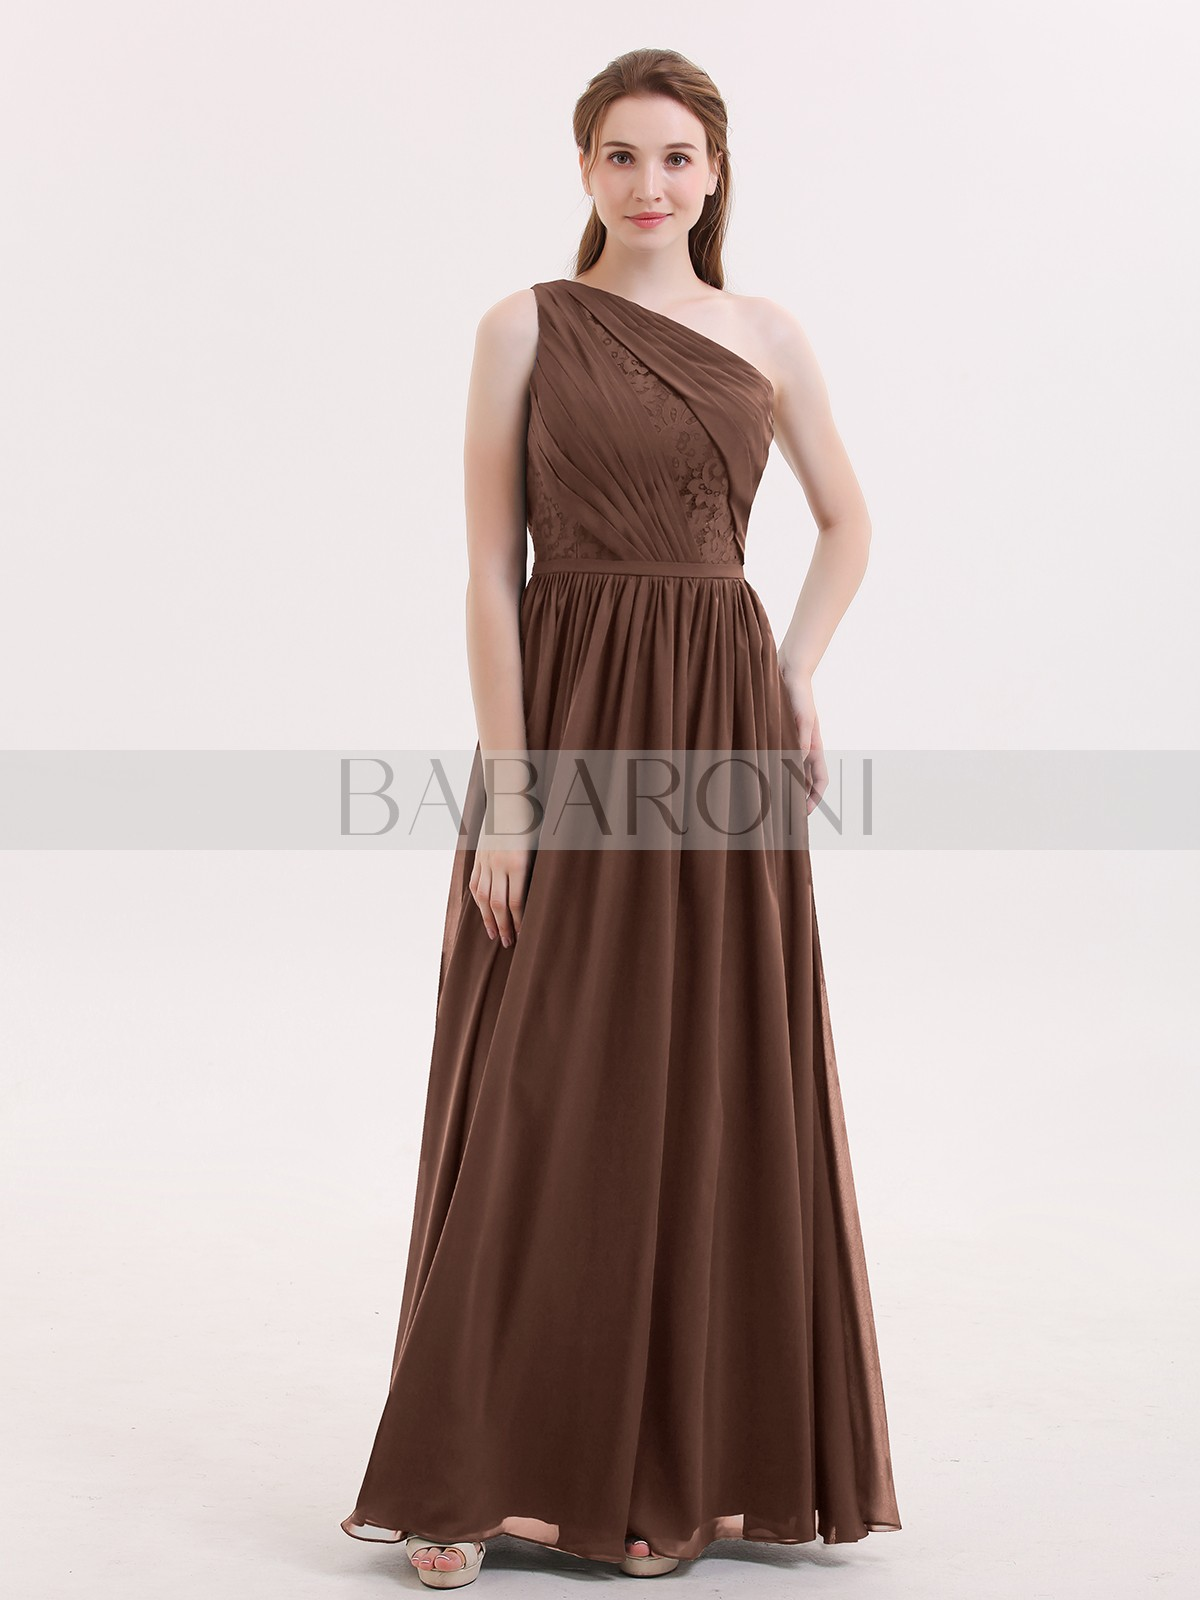 0a4bacbe3195 Chocolate Phoenix One Shoulder Chiffon and Lace Bridesmaid Dress ...